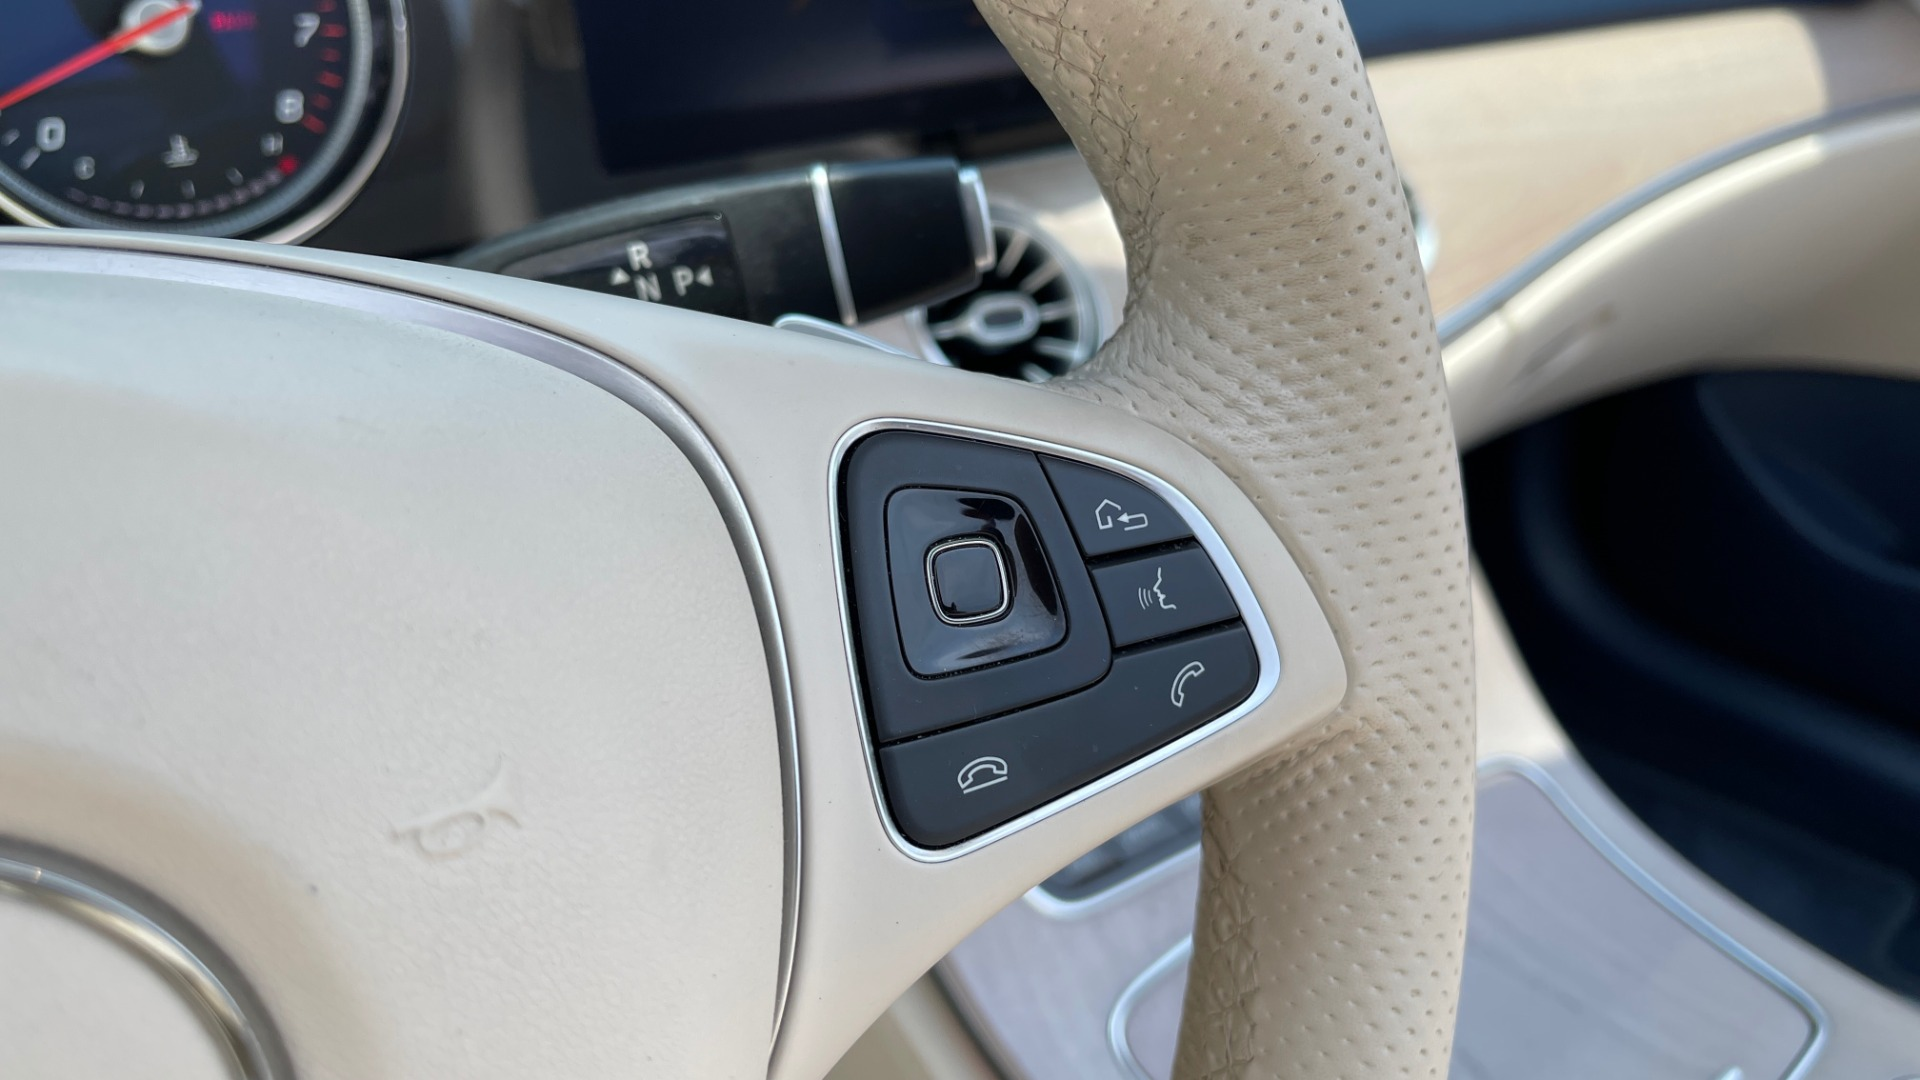 Used 2018 Mercedes-Benz E-CLASS E 400 CABRIOLET / PREM PKG / AMG LINE / NAV / REARVIEW for sale Sold at Formula Imports in Charlotte NC 28227 20